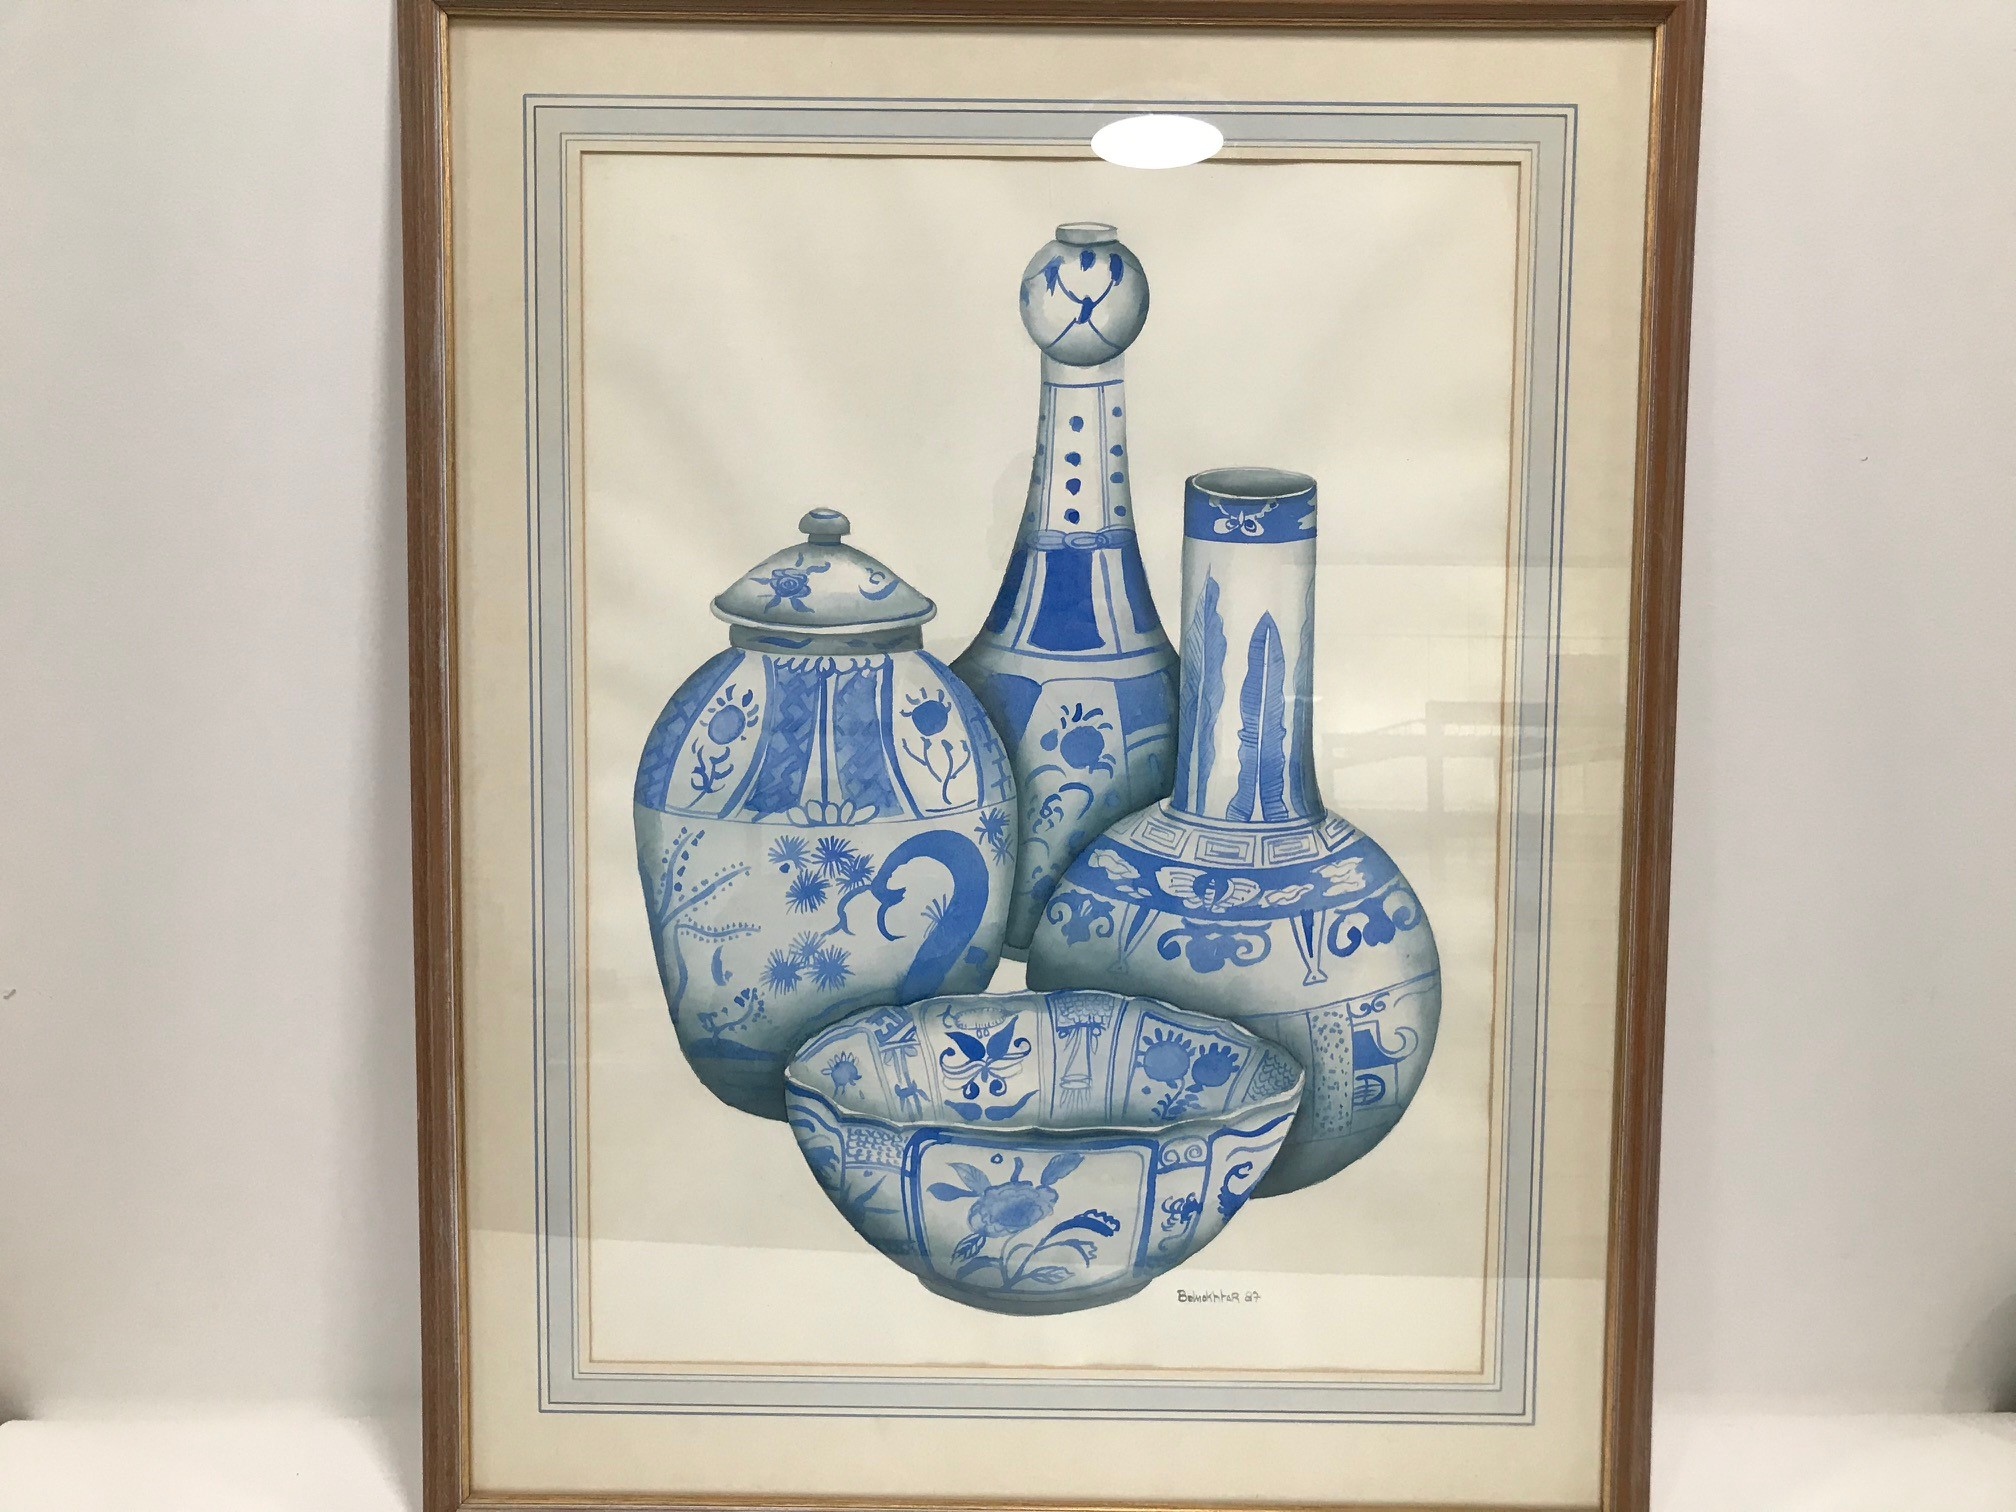 Mandy Belmokhtar 20th century gouache on paper painting, 73cm by 55cm, blue and white Chinese